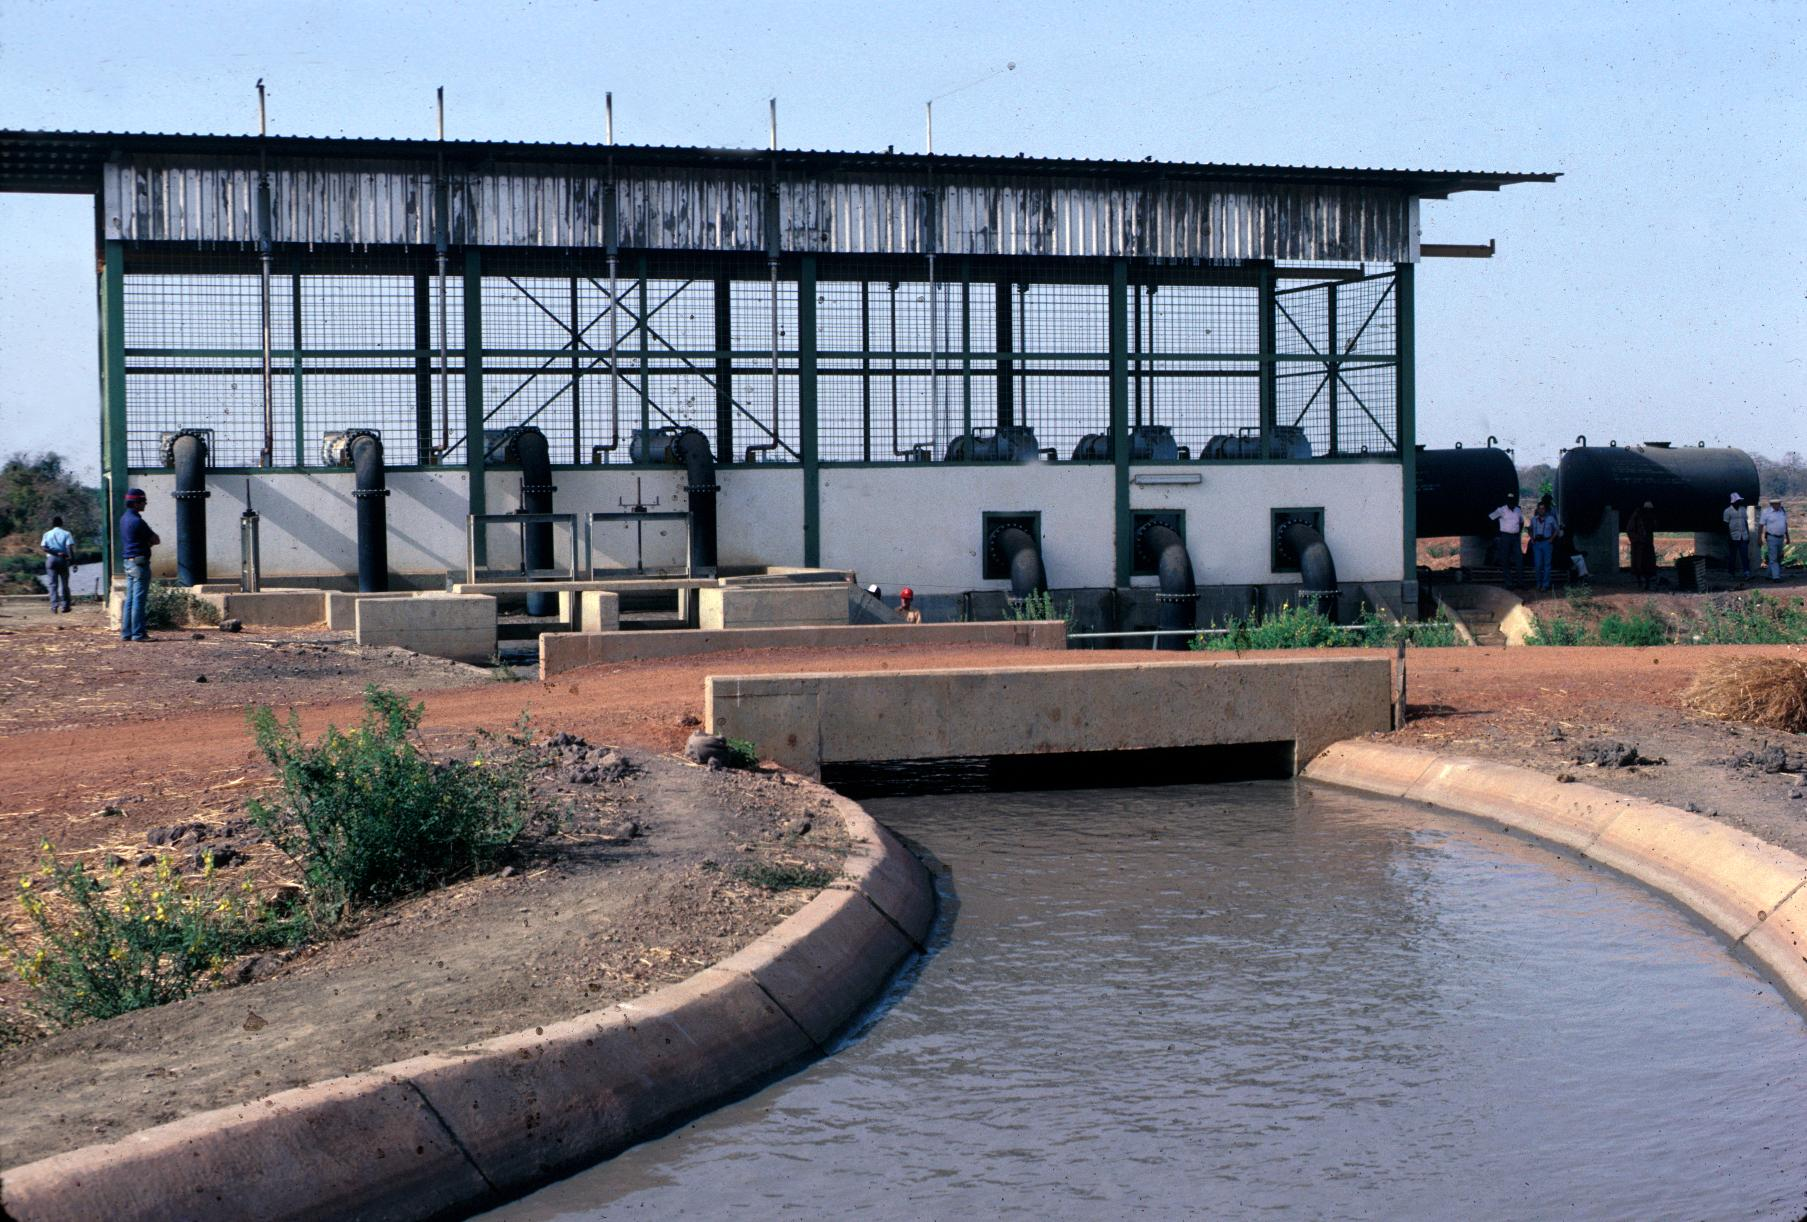 Irrigation Pump House and Canal in Jahally/Pacharr Rice Project